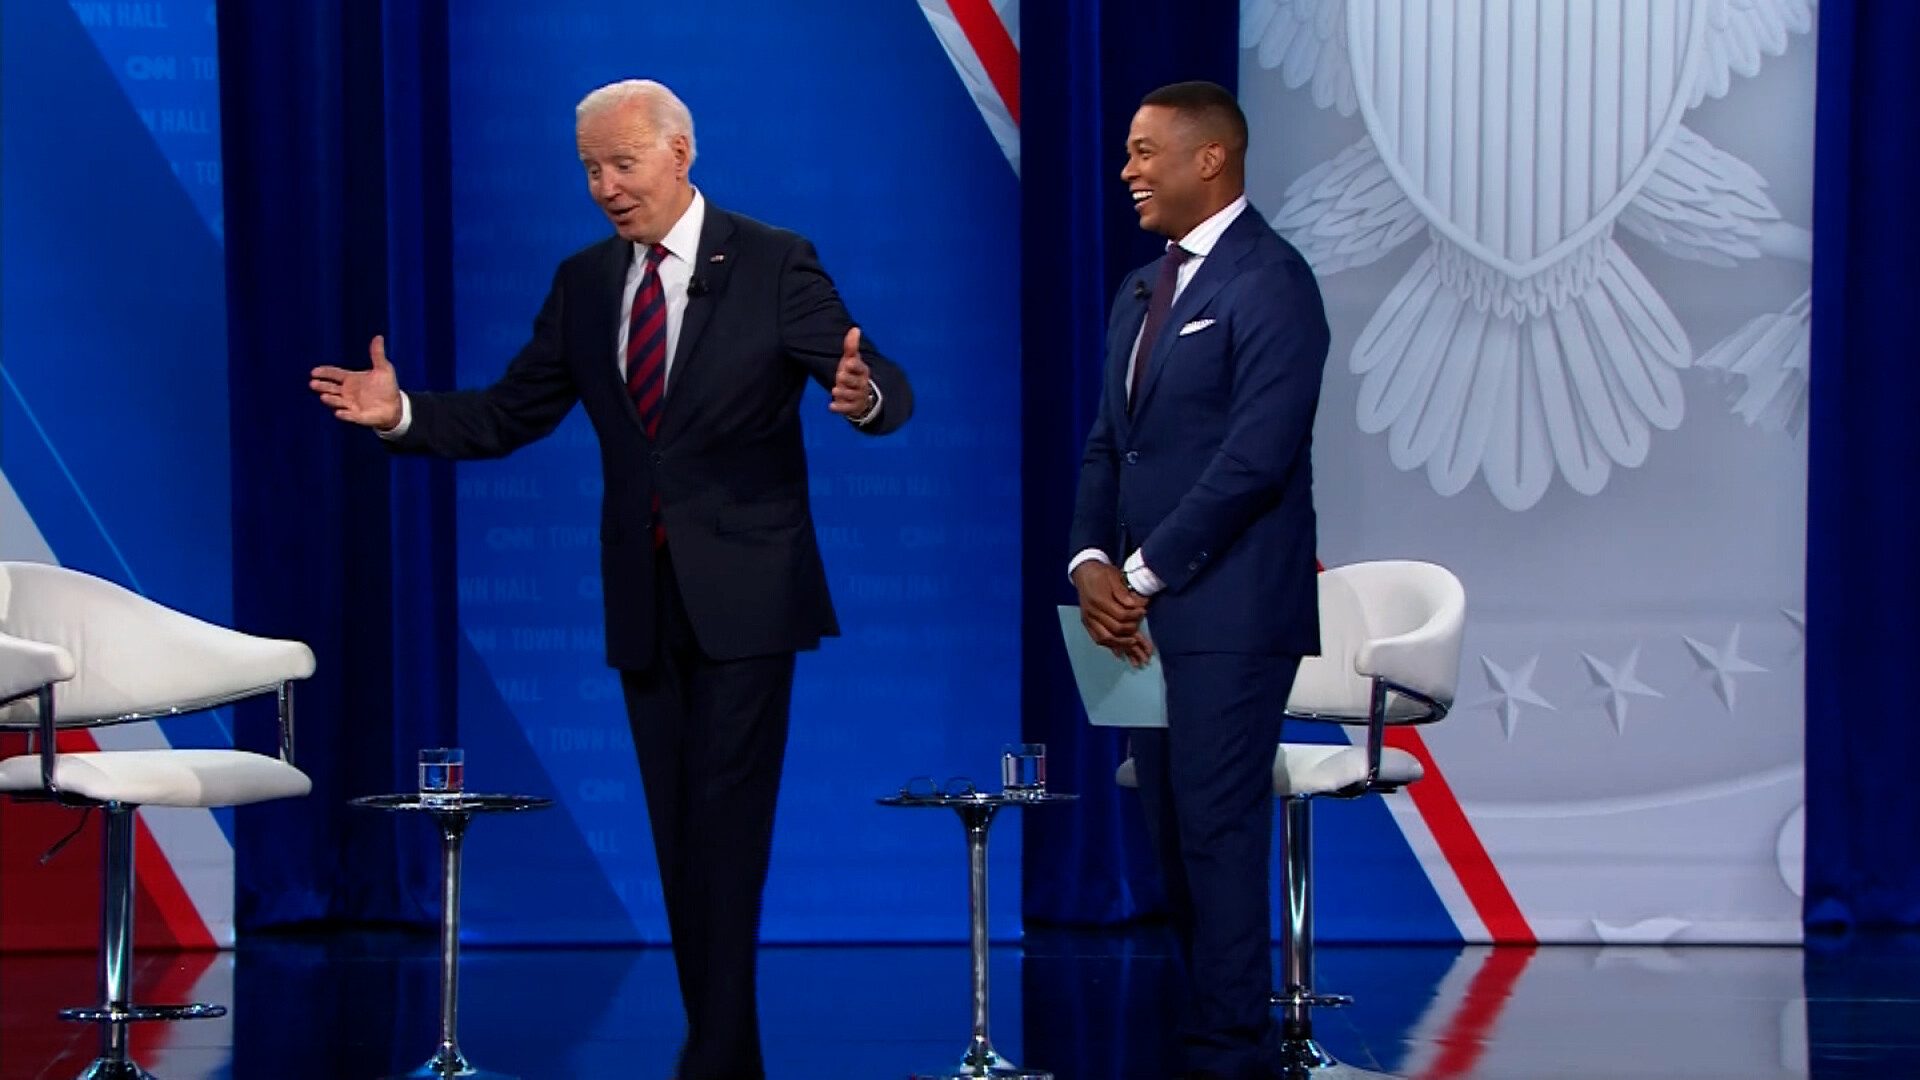 Biden: The first time they played 'Hail to the Chief' I asked, 'Where is he?'